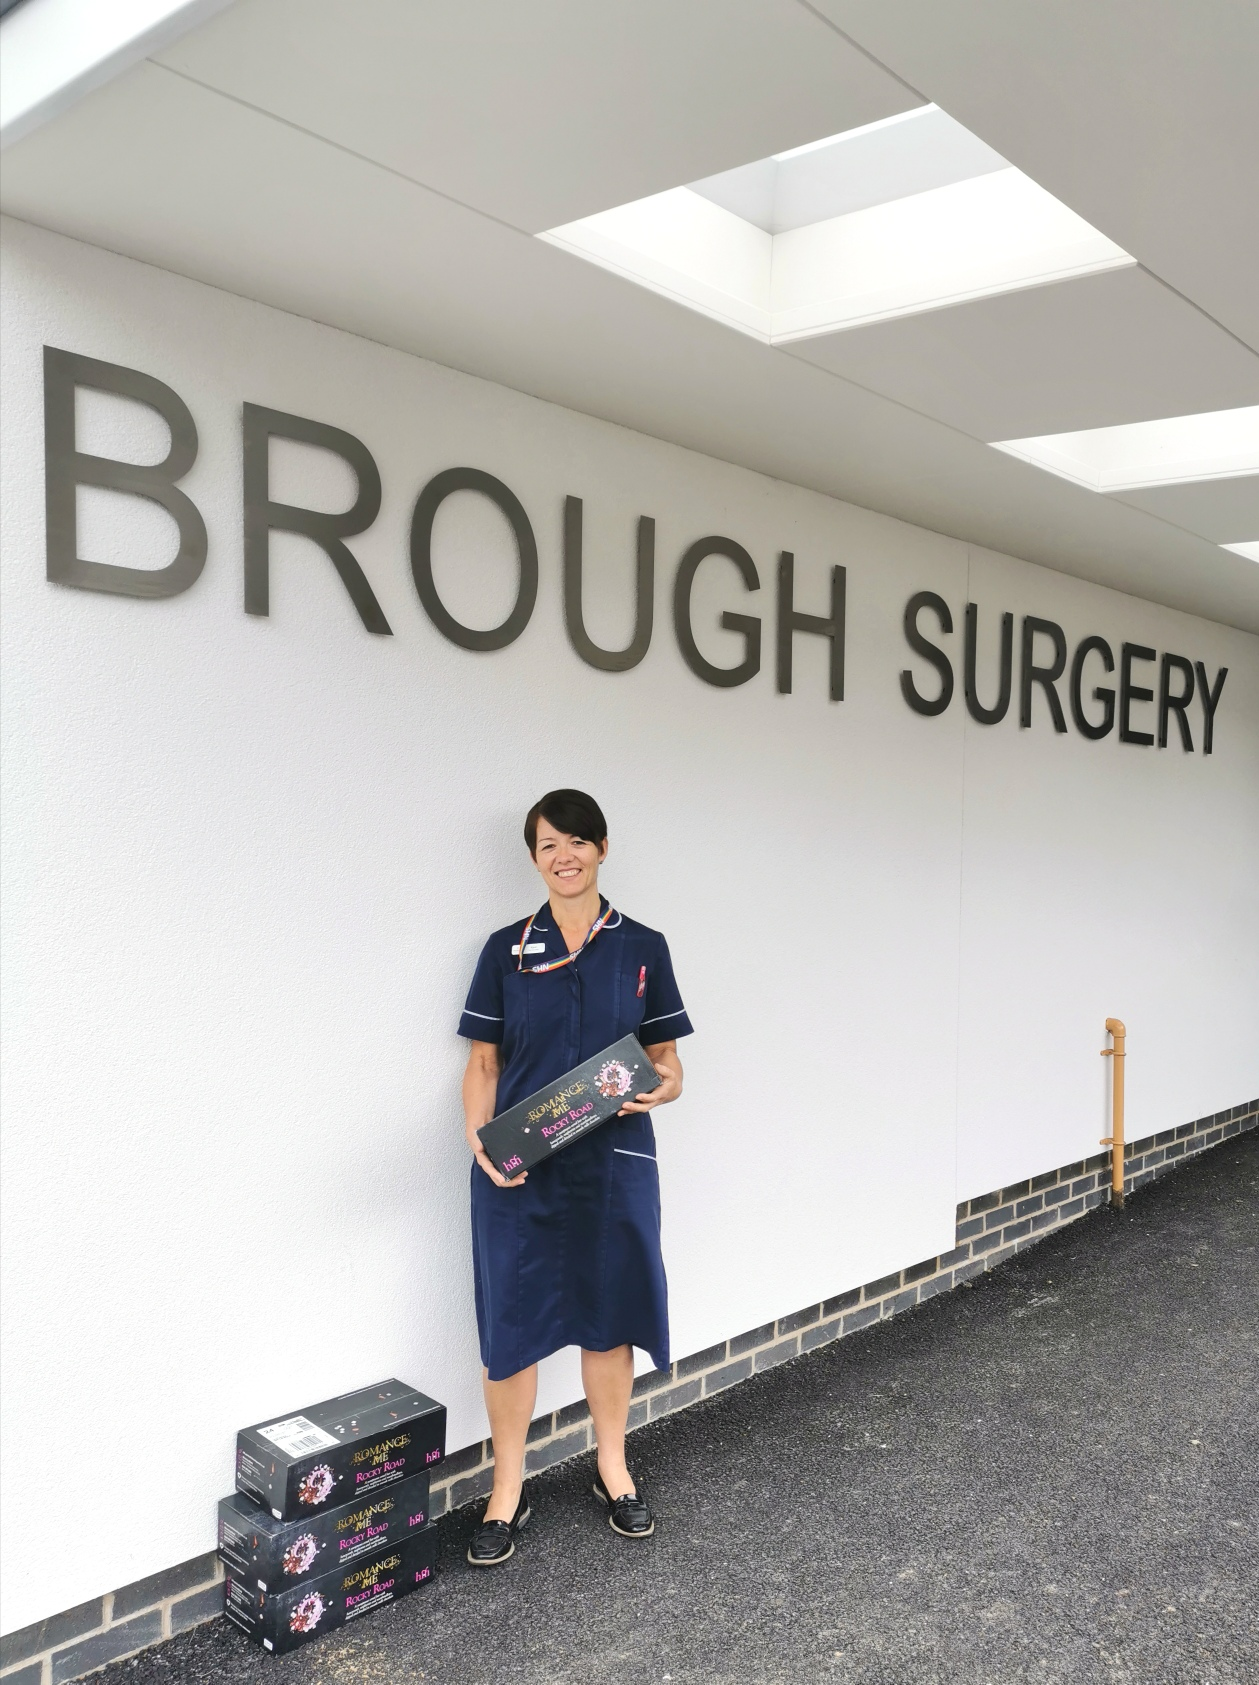 Person outside Brough Surgery